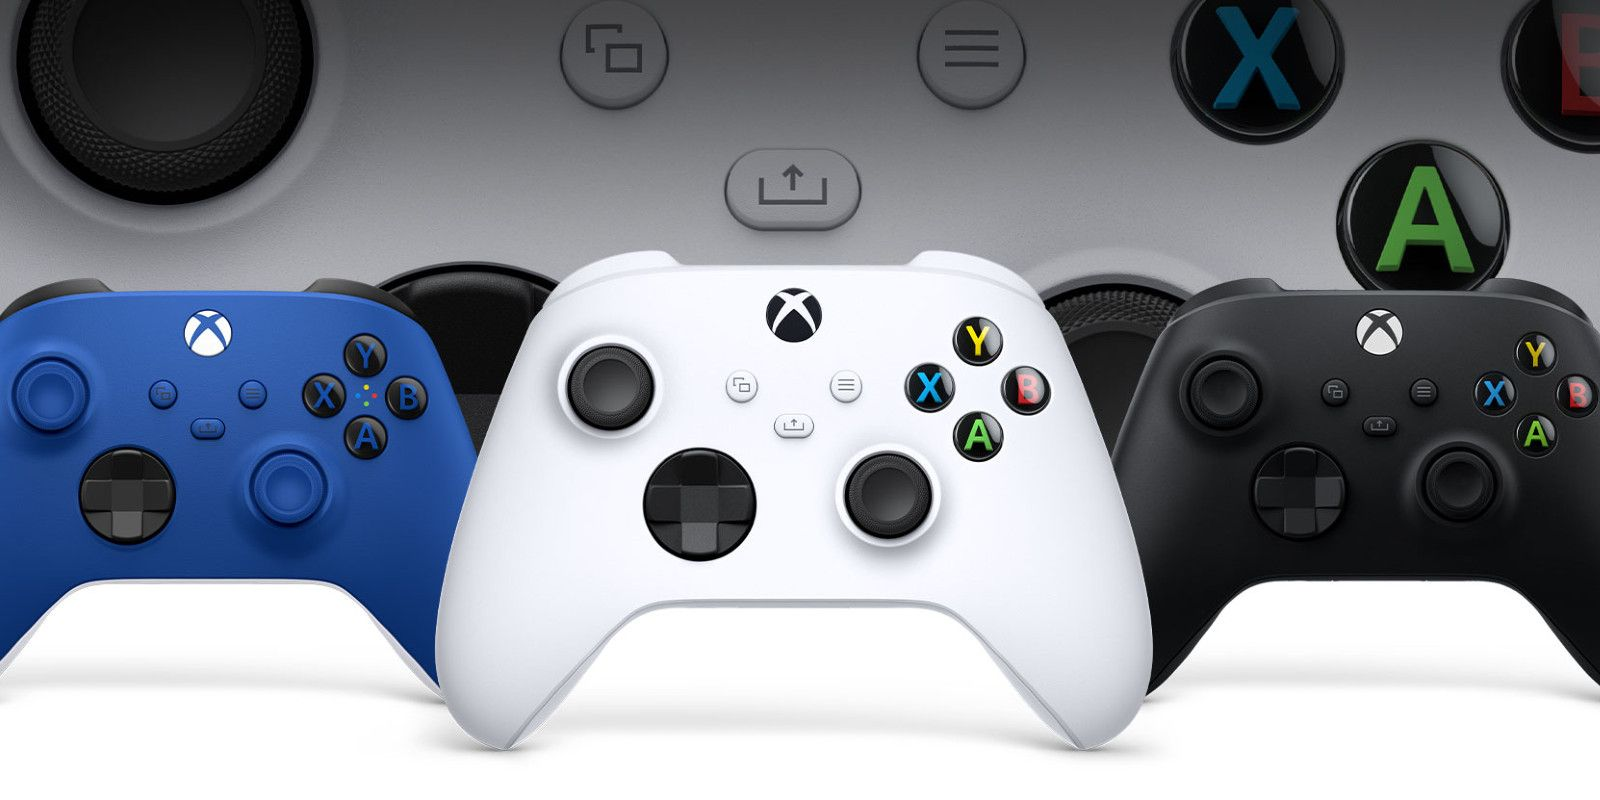 Xbox Series X Shock Blue Controller Joins White Black Launch Choices